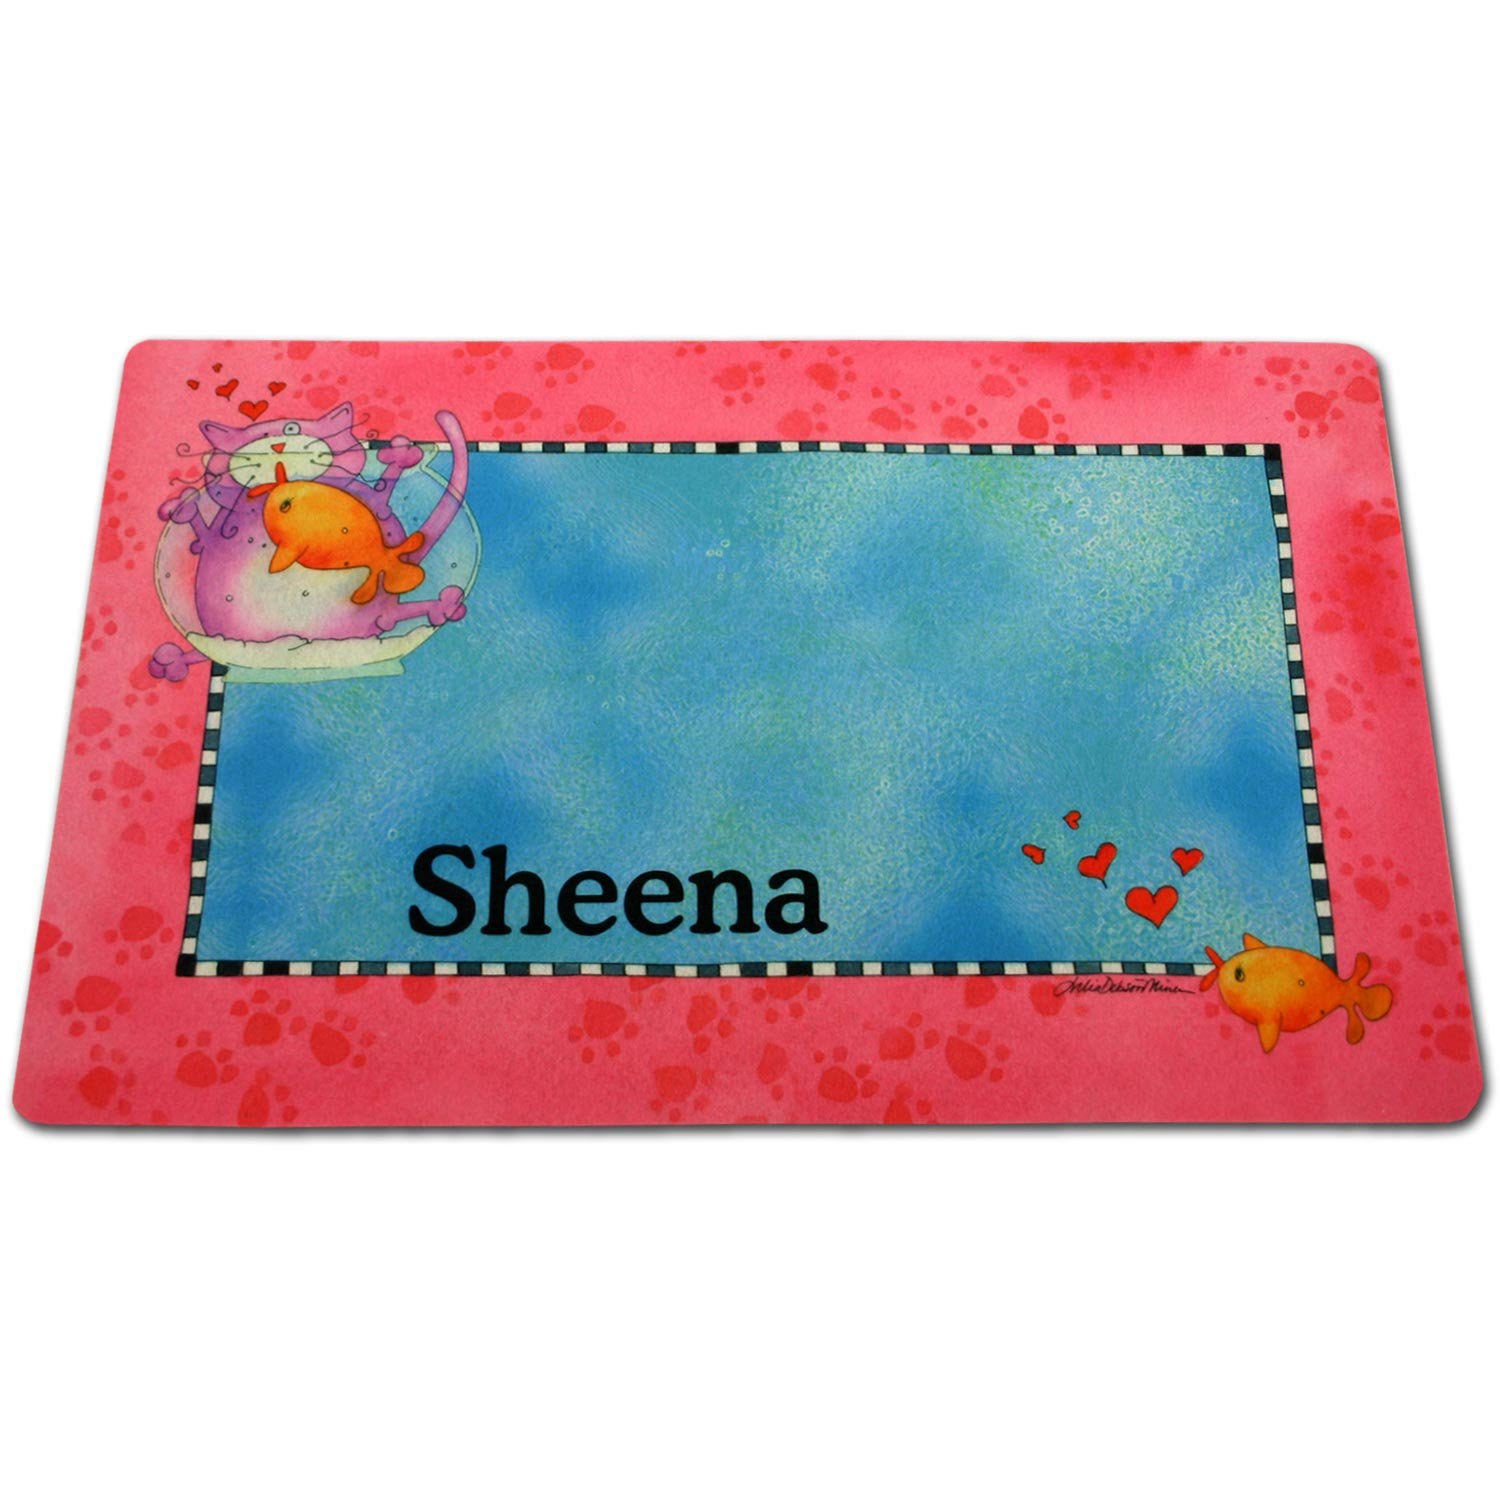 Dog Training Placemat: Drymate Pink Border Fish Bowl Personalized Pet Placemat